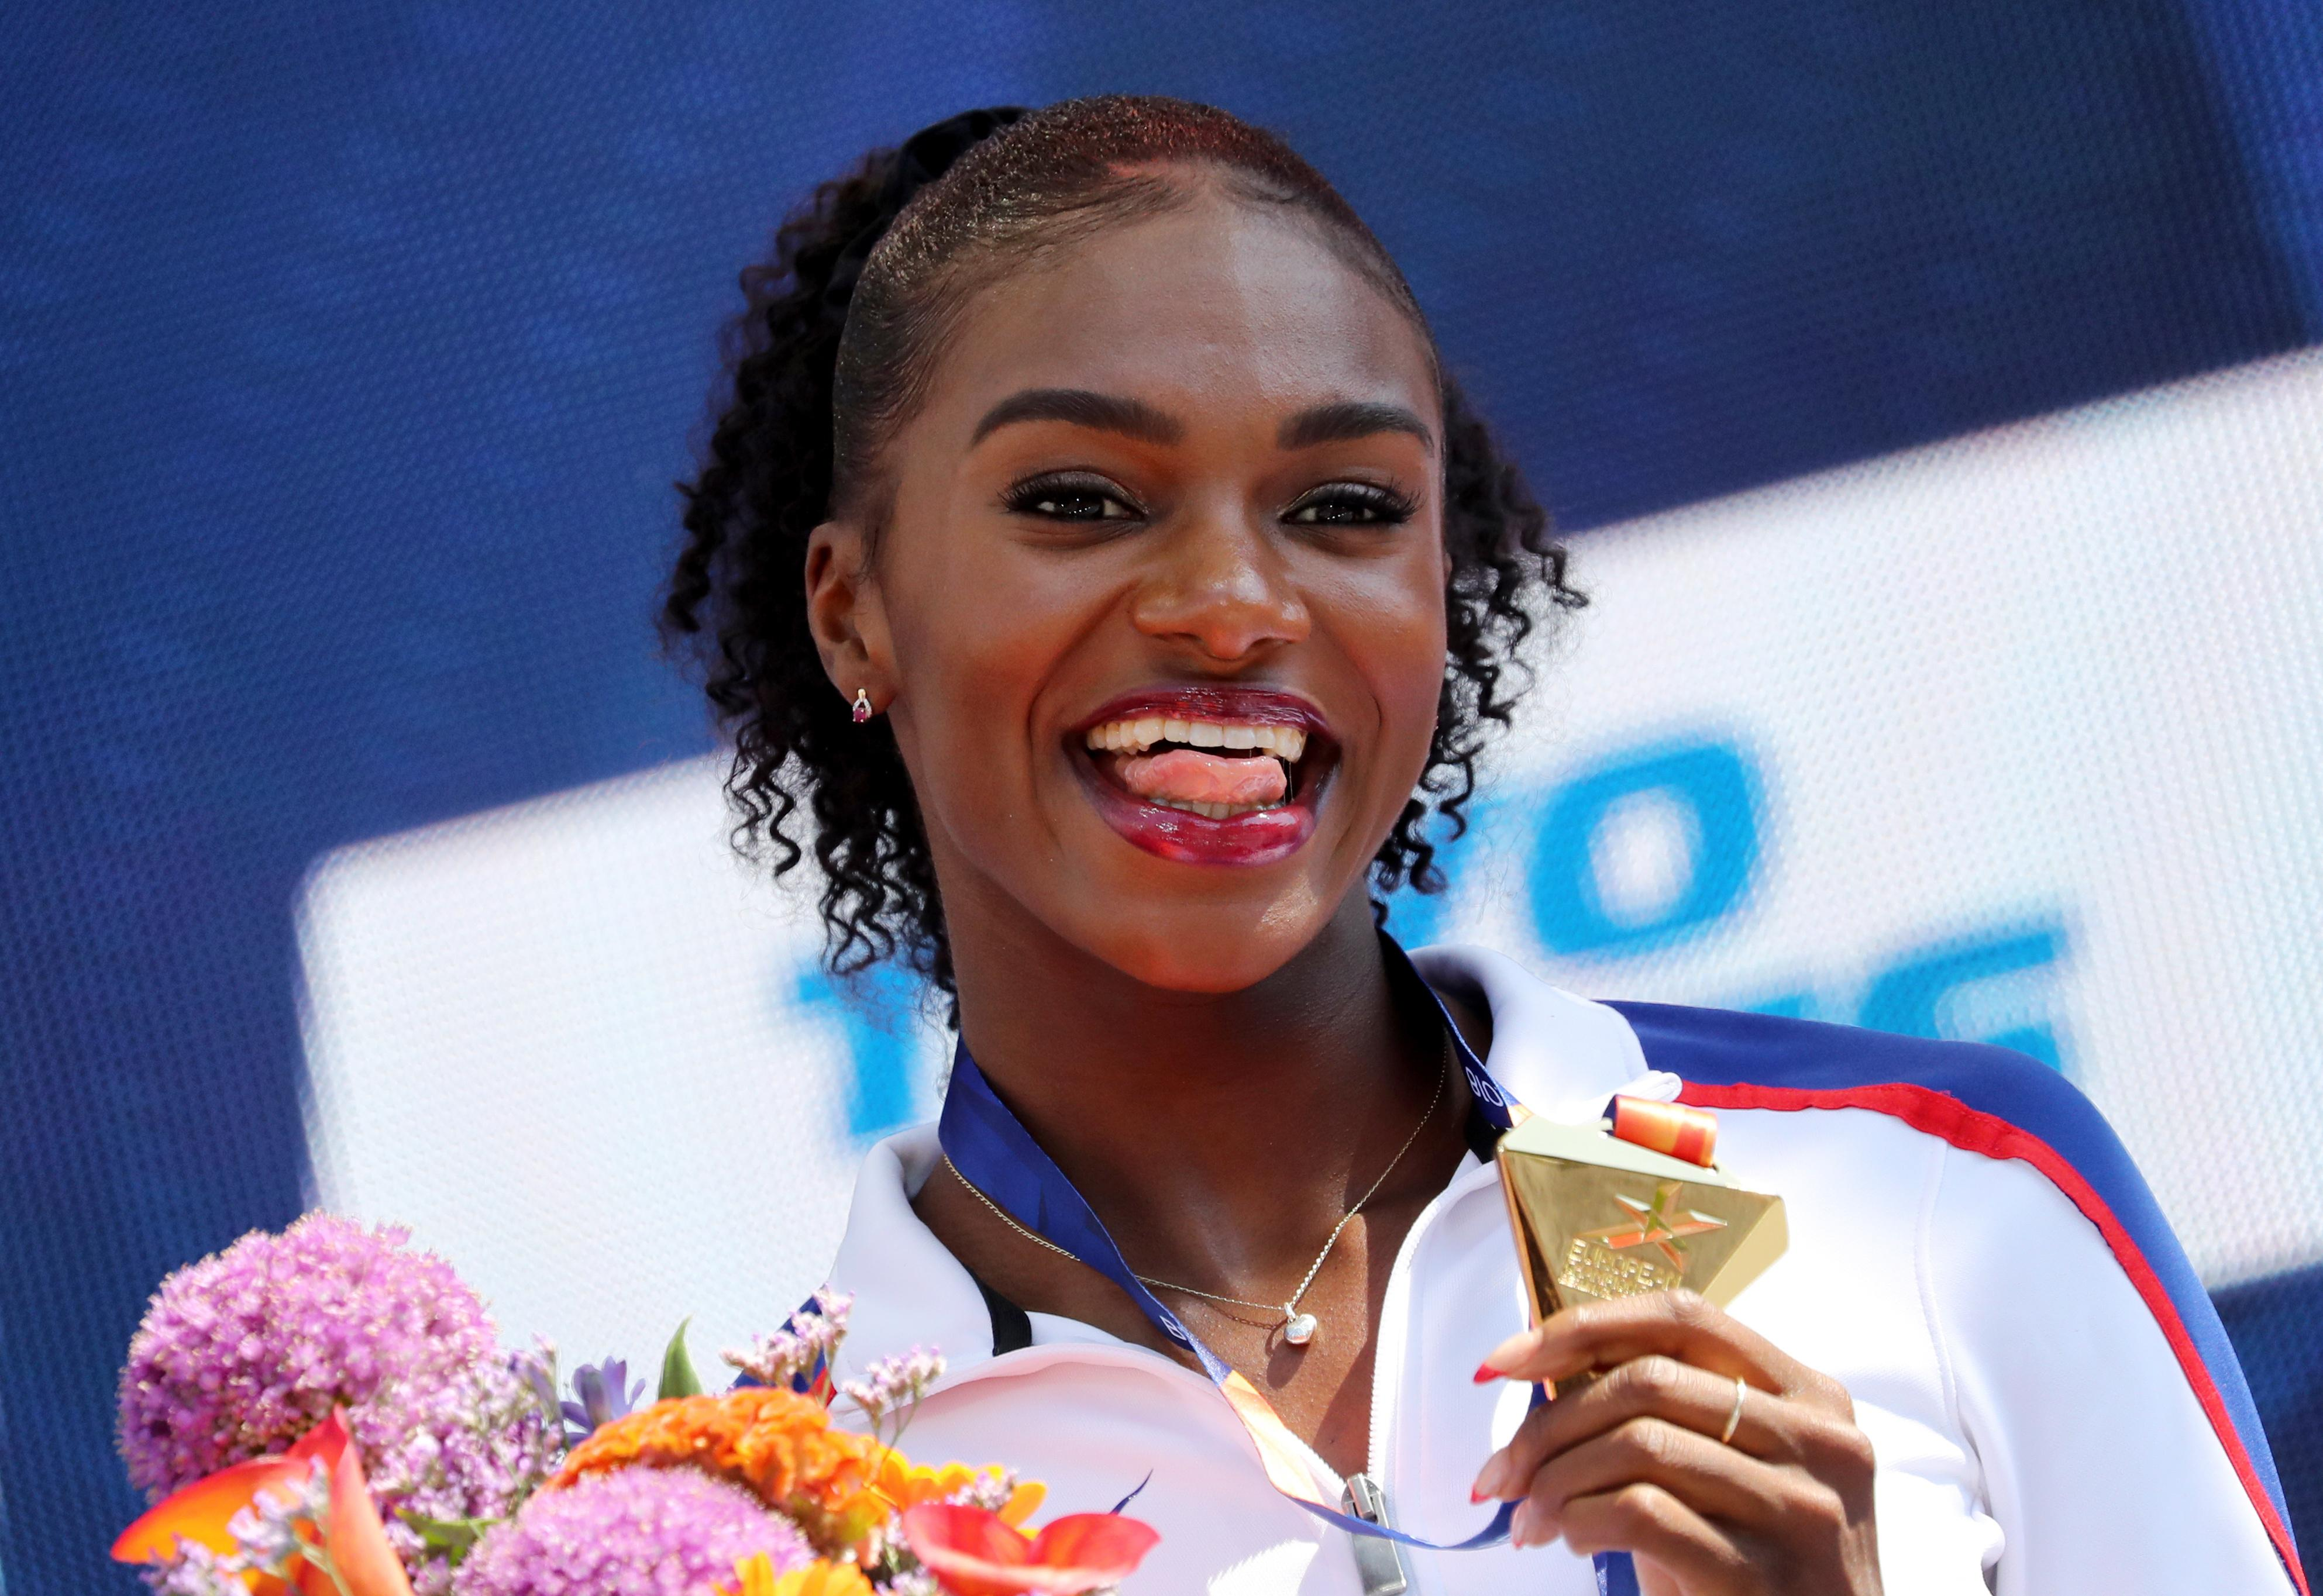 Asher-Smith won gold in the 100m, 200m and 4x100m